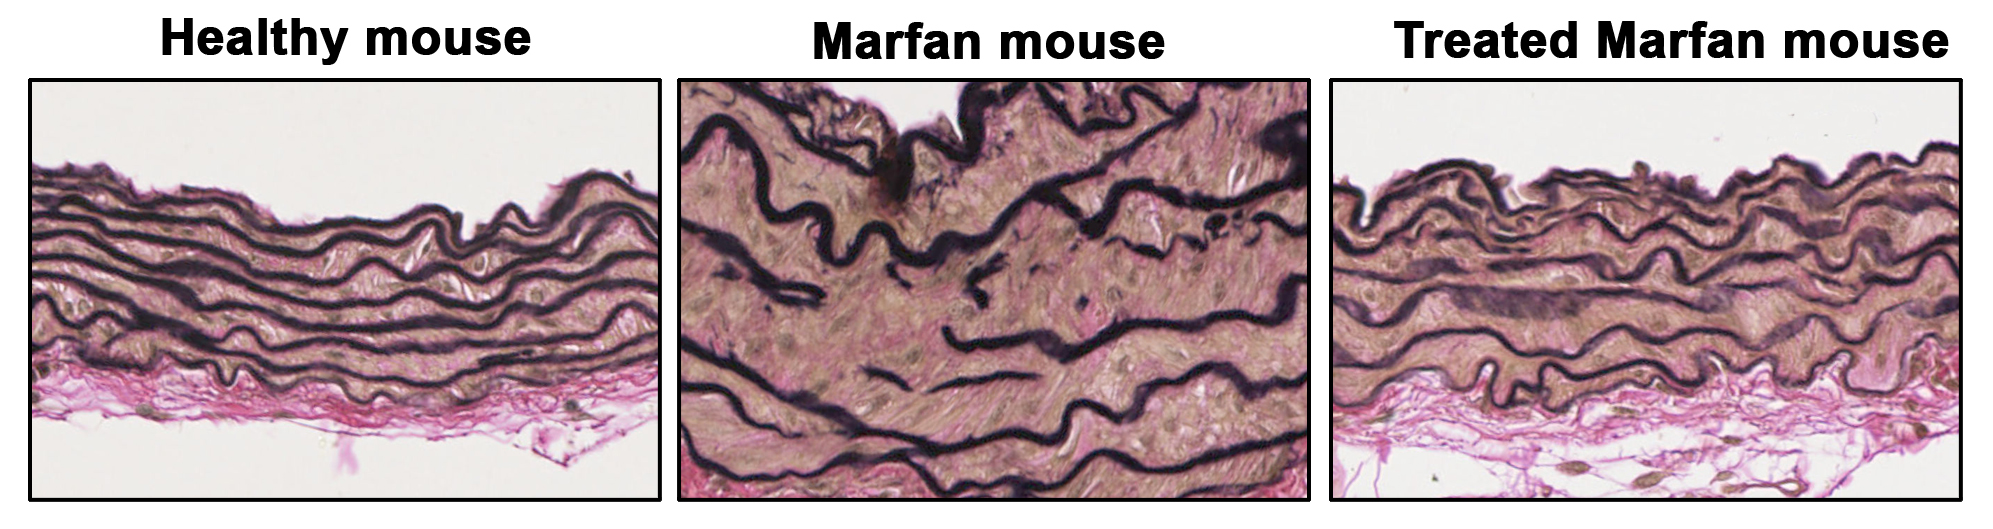 Images of aortic sections from a healthy mouse and from a Marfan syndrome mouse model showing that elastic fibers disarray (black lines) and vascular wall thickening in the Marfan mouse model is reverted upon gene silencing of the Prkg1 protein.